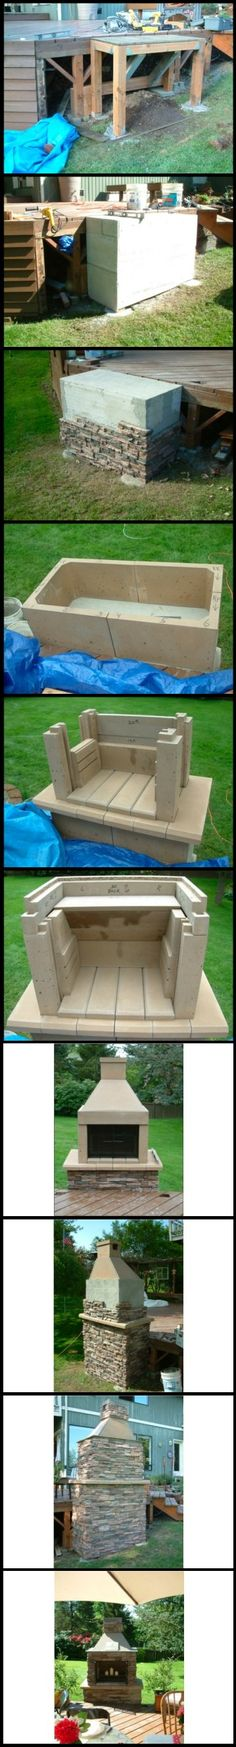 Before-During-After images of a customer's #DIY outdoor #fireplace kit assembly - see more outdoor fireplaces: http://www.mantelsdirect.com/outdoor_fireplaces.html?utm_source=pinterest&utm_medium=social&utm_campaign=outdoorfirepits&cpao=130&cpca=pinterest&cpag=social&kw=outdoorfirepits